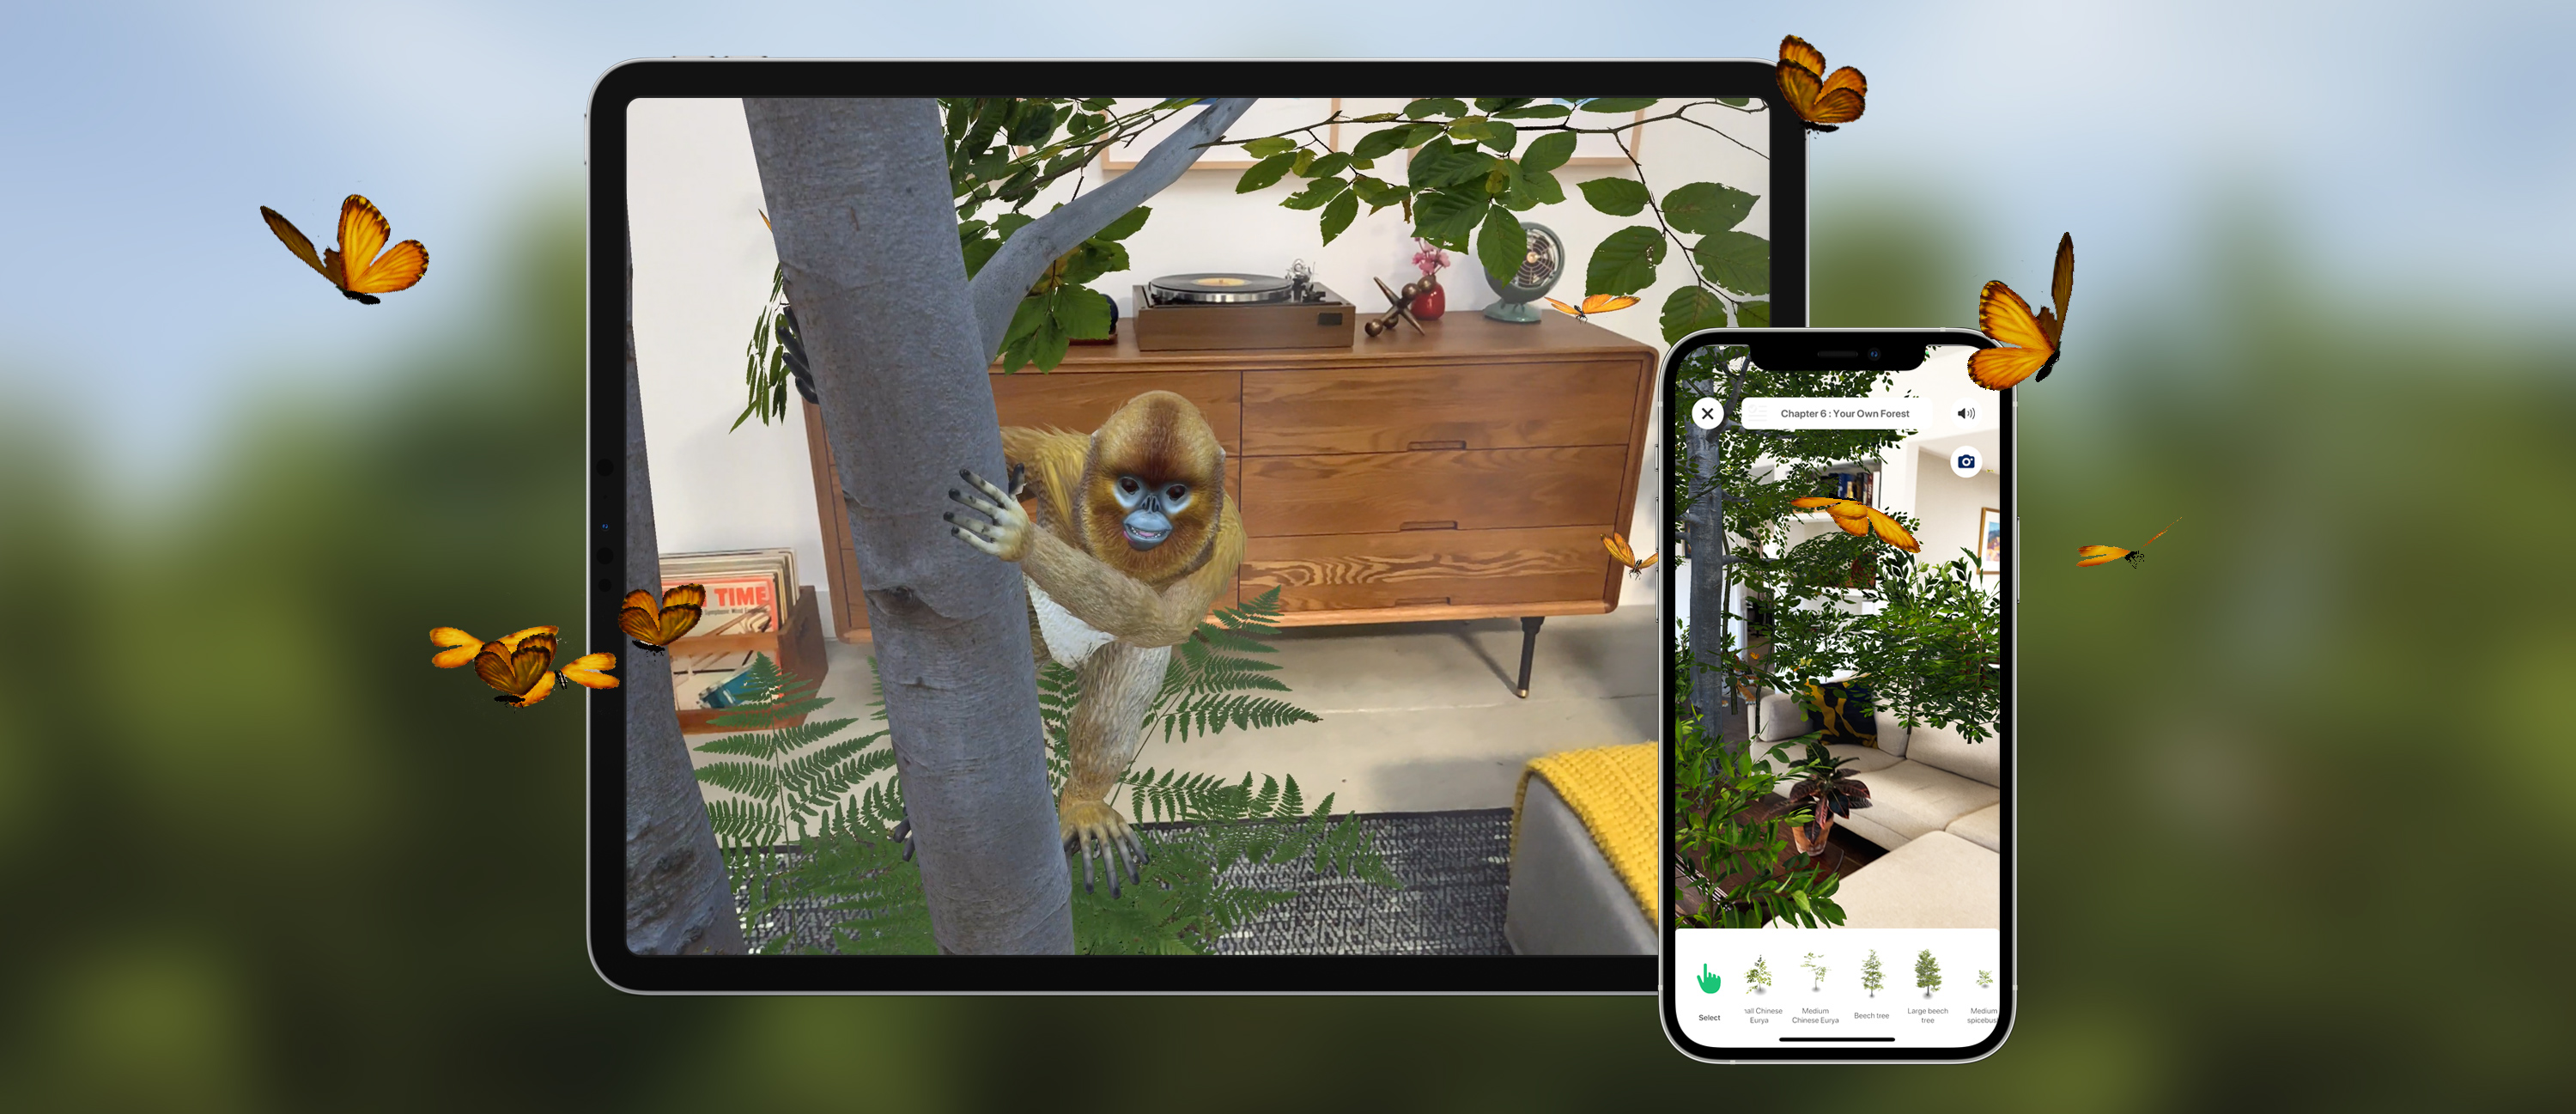 ipad and iPhone showing AR trees and animals in a room